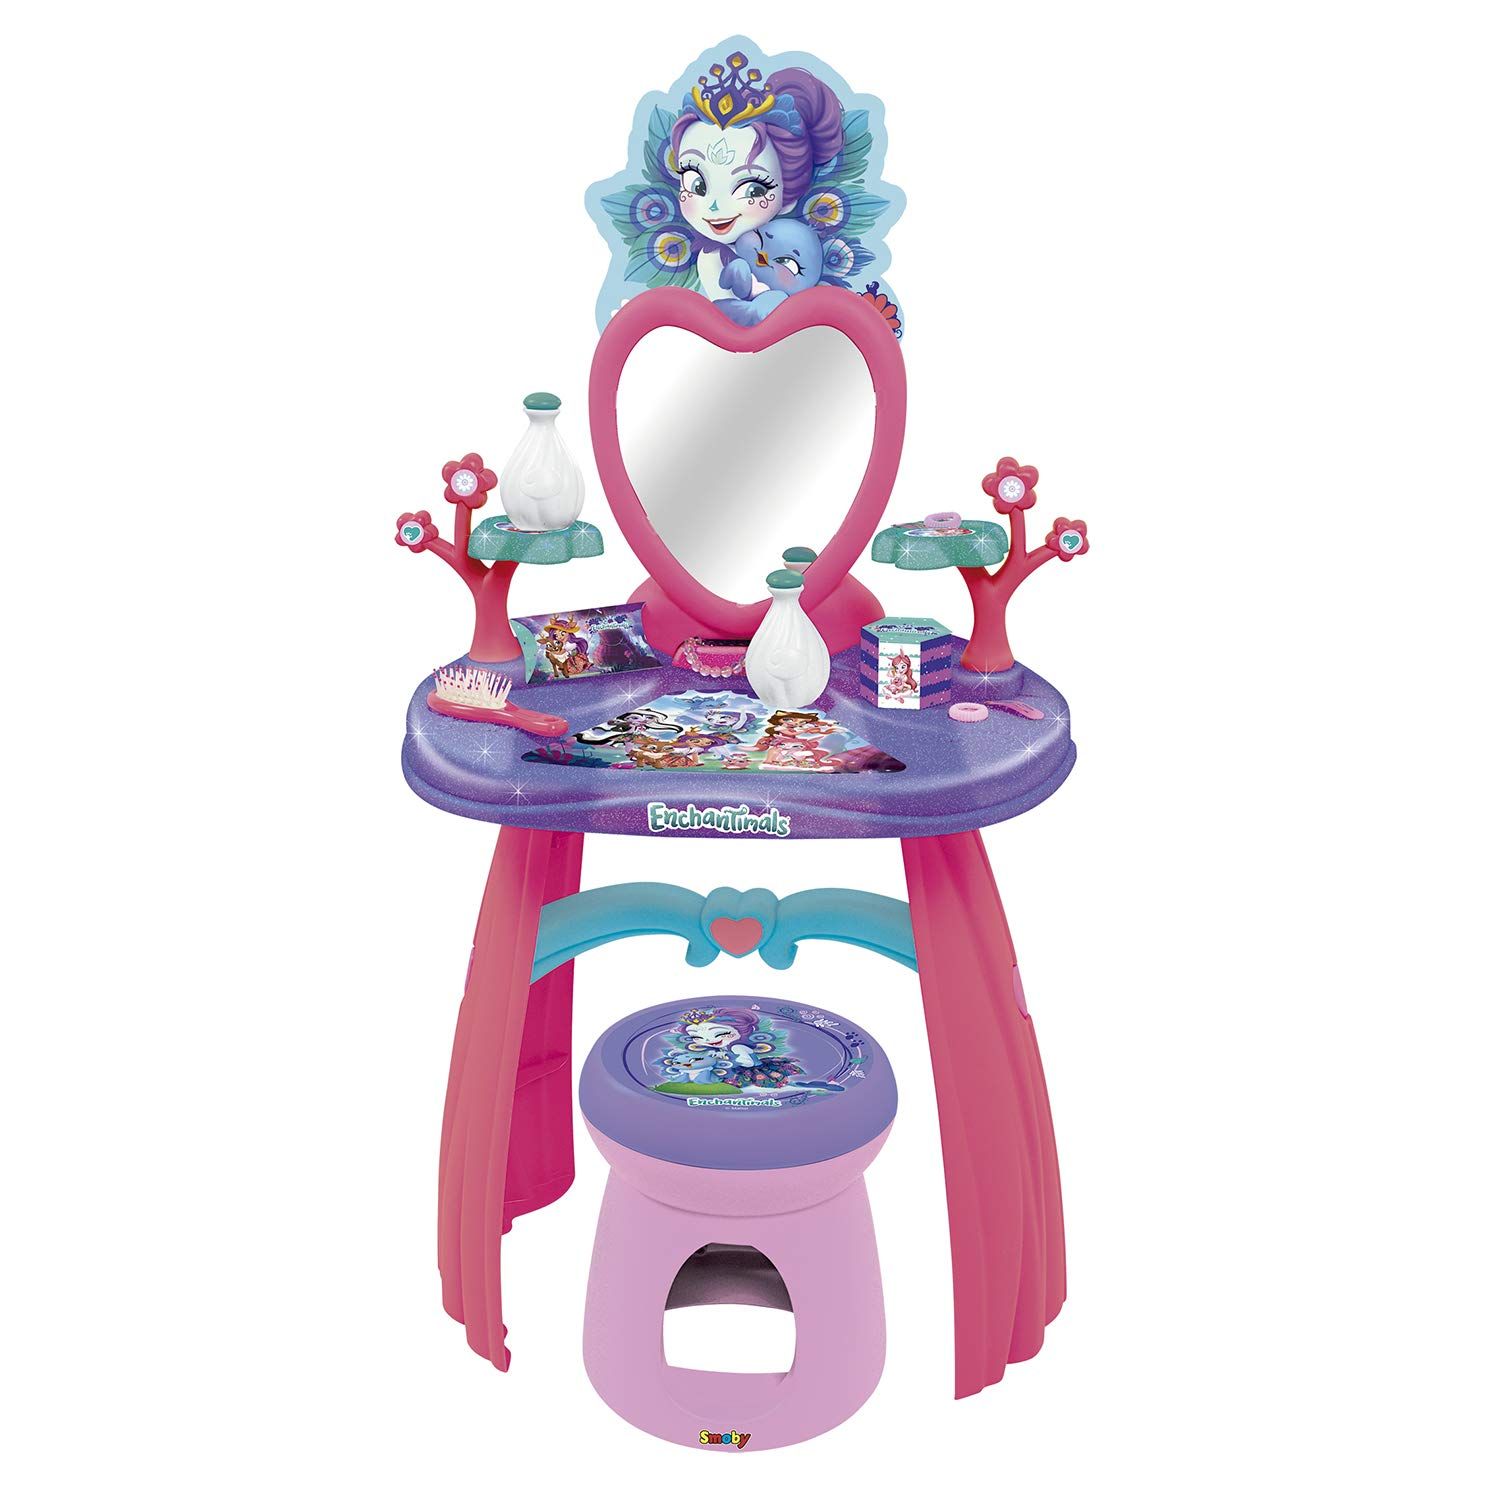 Smoby Enchantimals Dressing Table, Purple, Pink (320229)